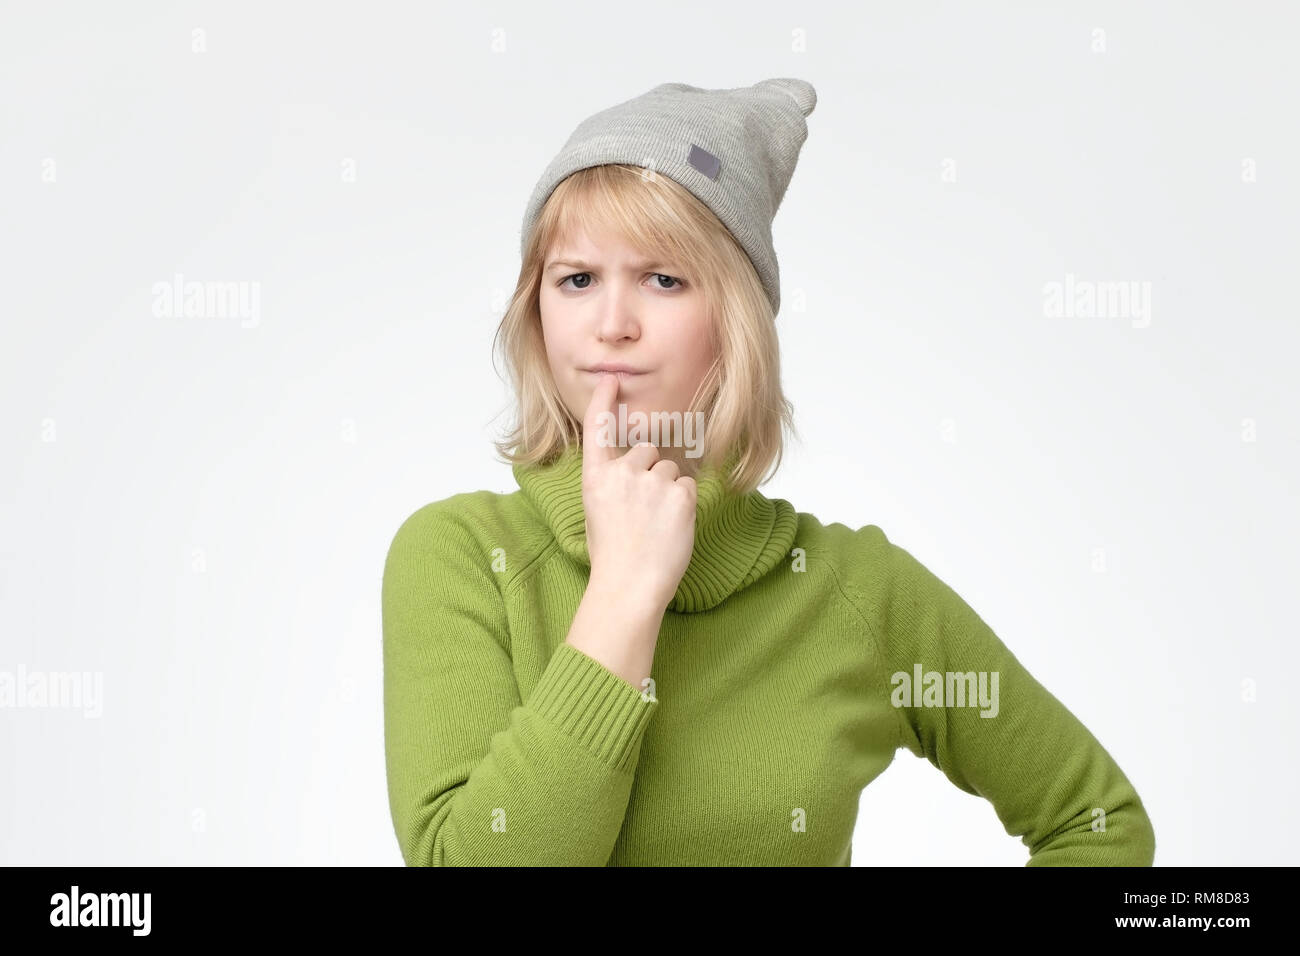 Blonde female wearing green sweater with puzzled expression, keeps finger on lips - Stock Image